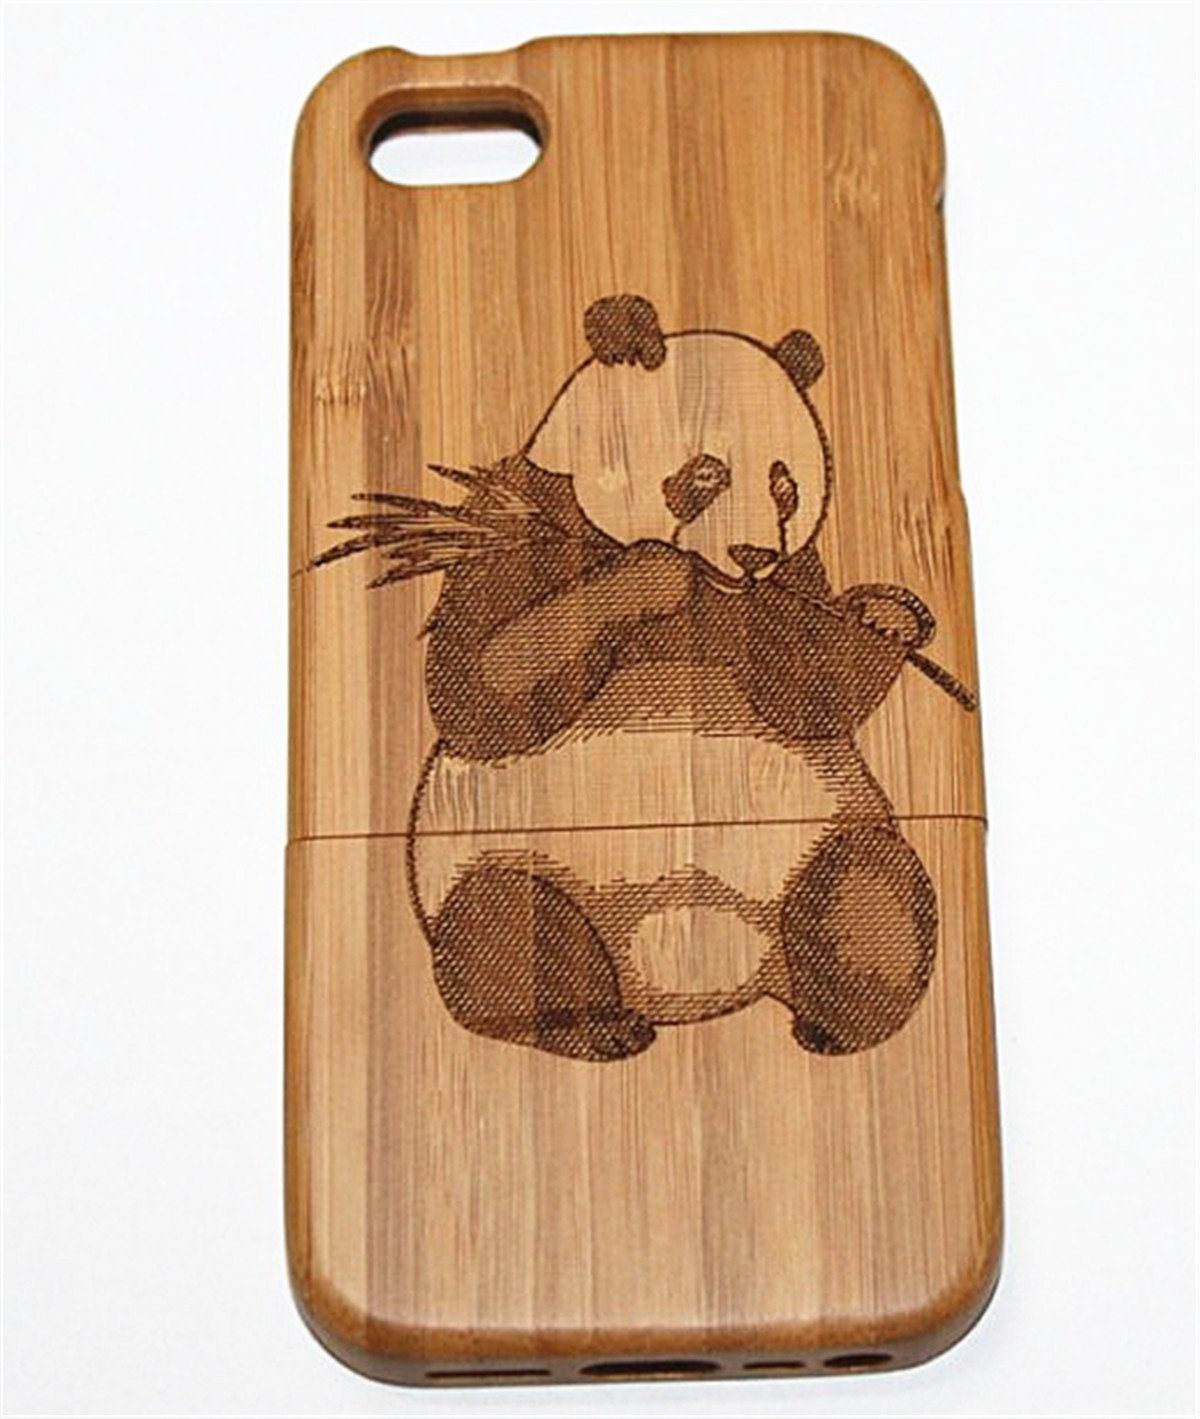 iPhone 6/6S Plus Case, Firefish Panda Pattern Natural Handmade Hard Wood Case Cove With Laser Engraved Shock & Scratch Protective For iPhone 6/6S Plus ( With A Stylus) -Panda